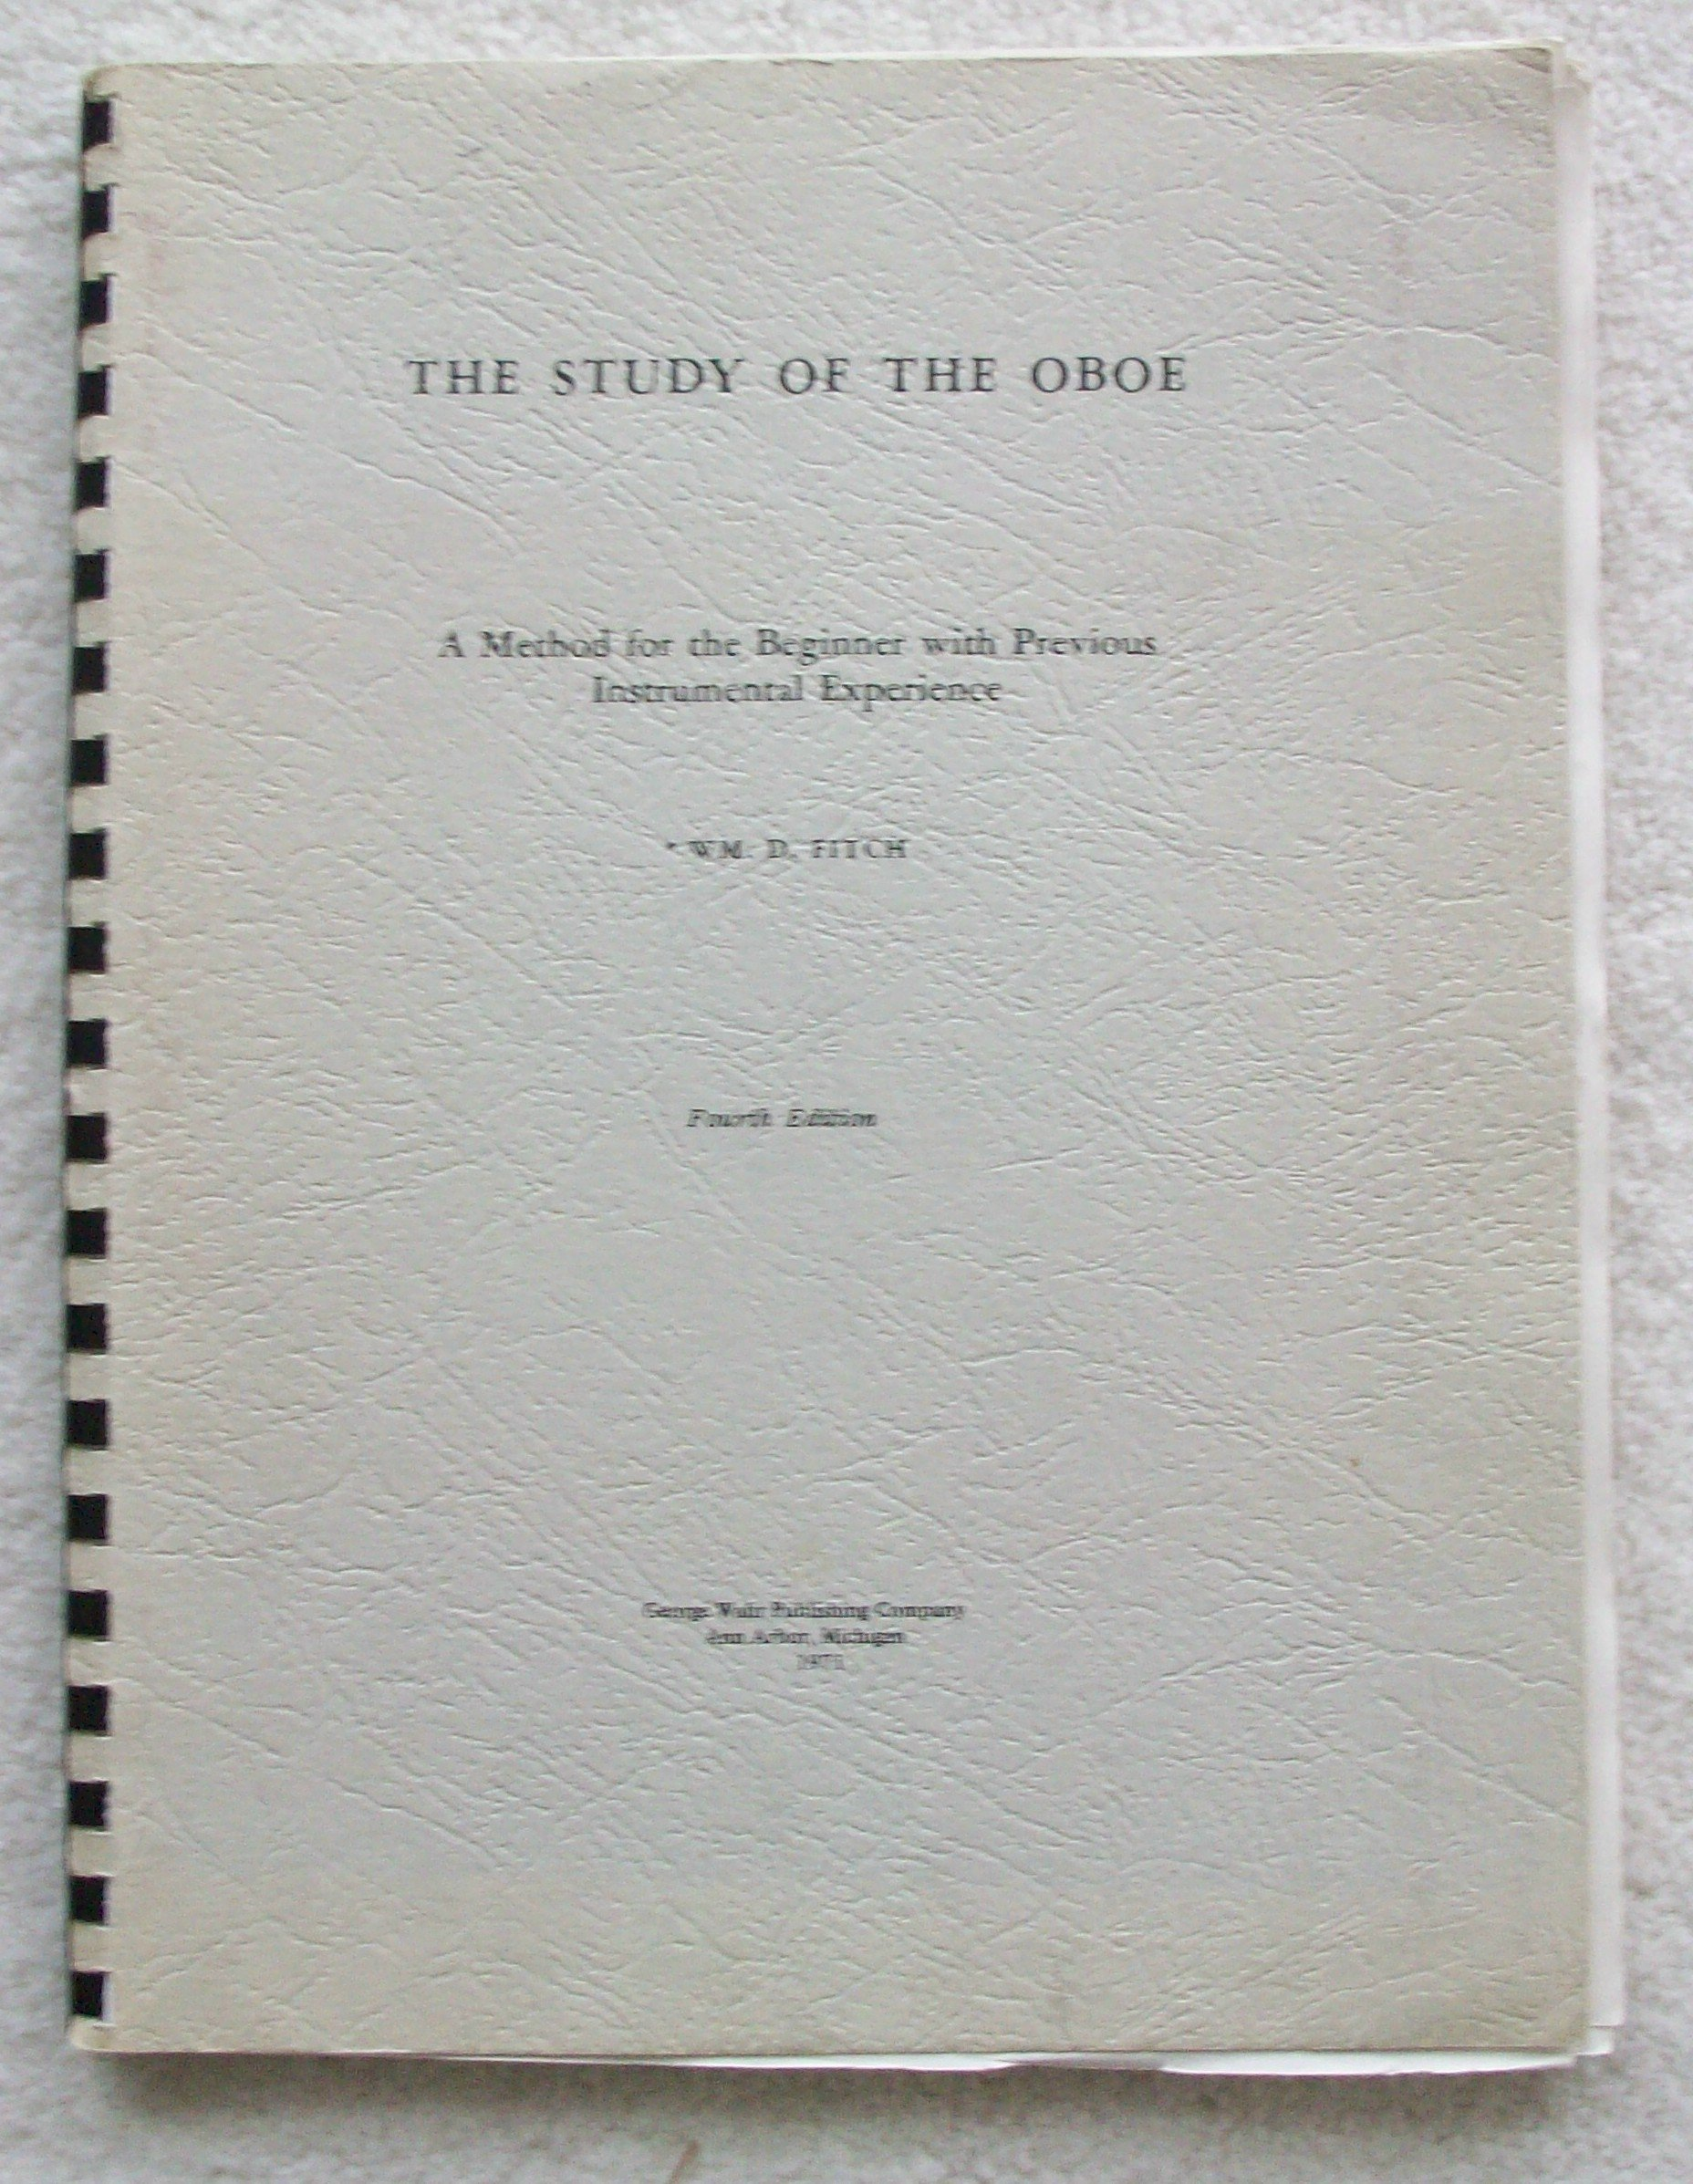 The Study of the Oboe: A Method for the Beginner with Previous Instrumental Experience